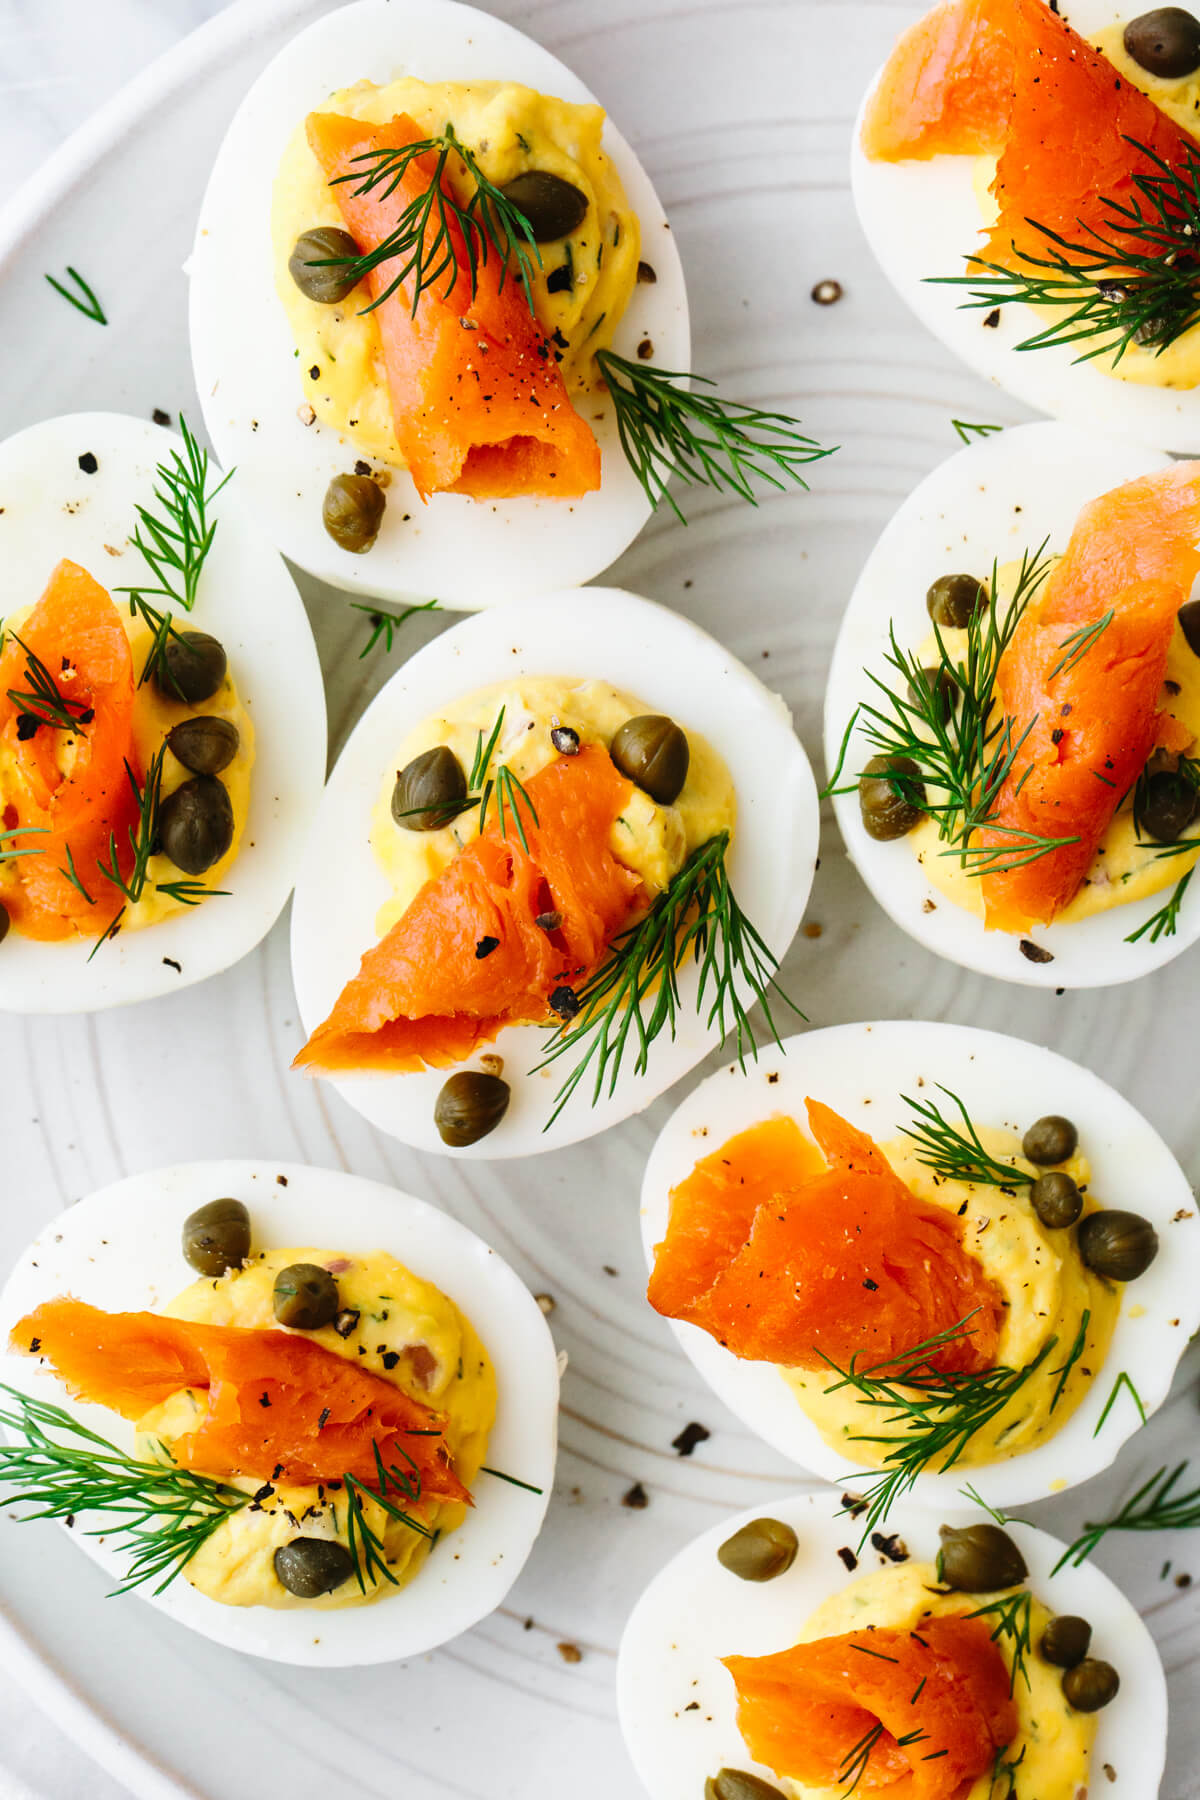 Smoked salmon deviled eggs on a plate.